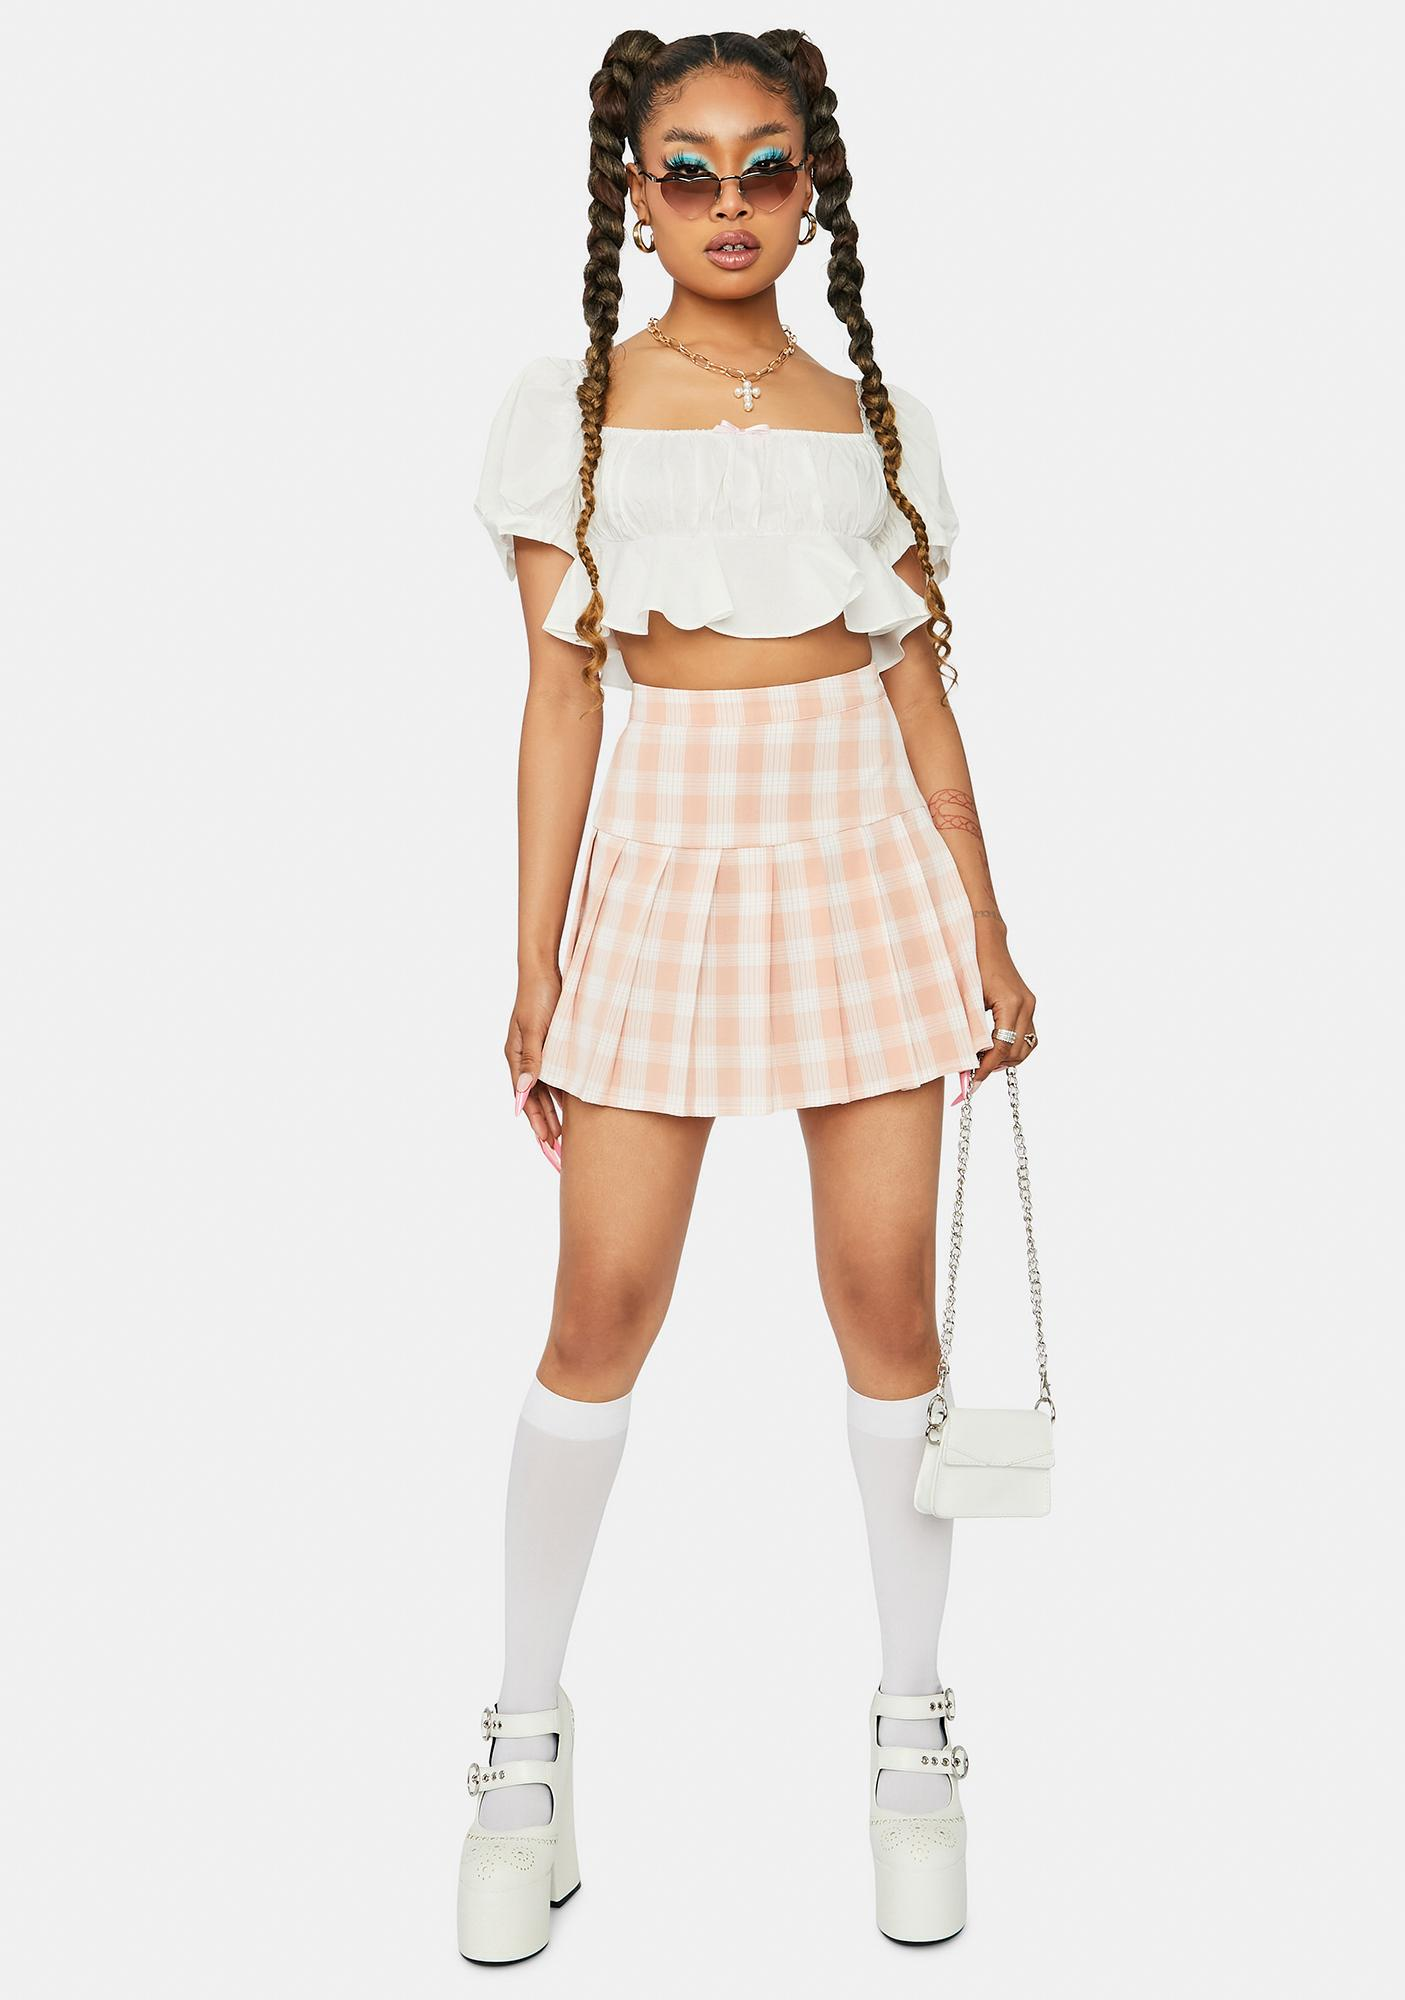 Pretty No Standing In My Way Pleated Skirt